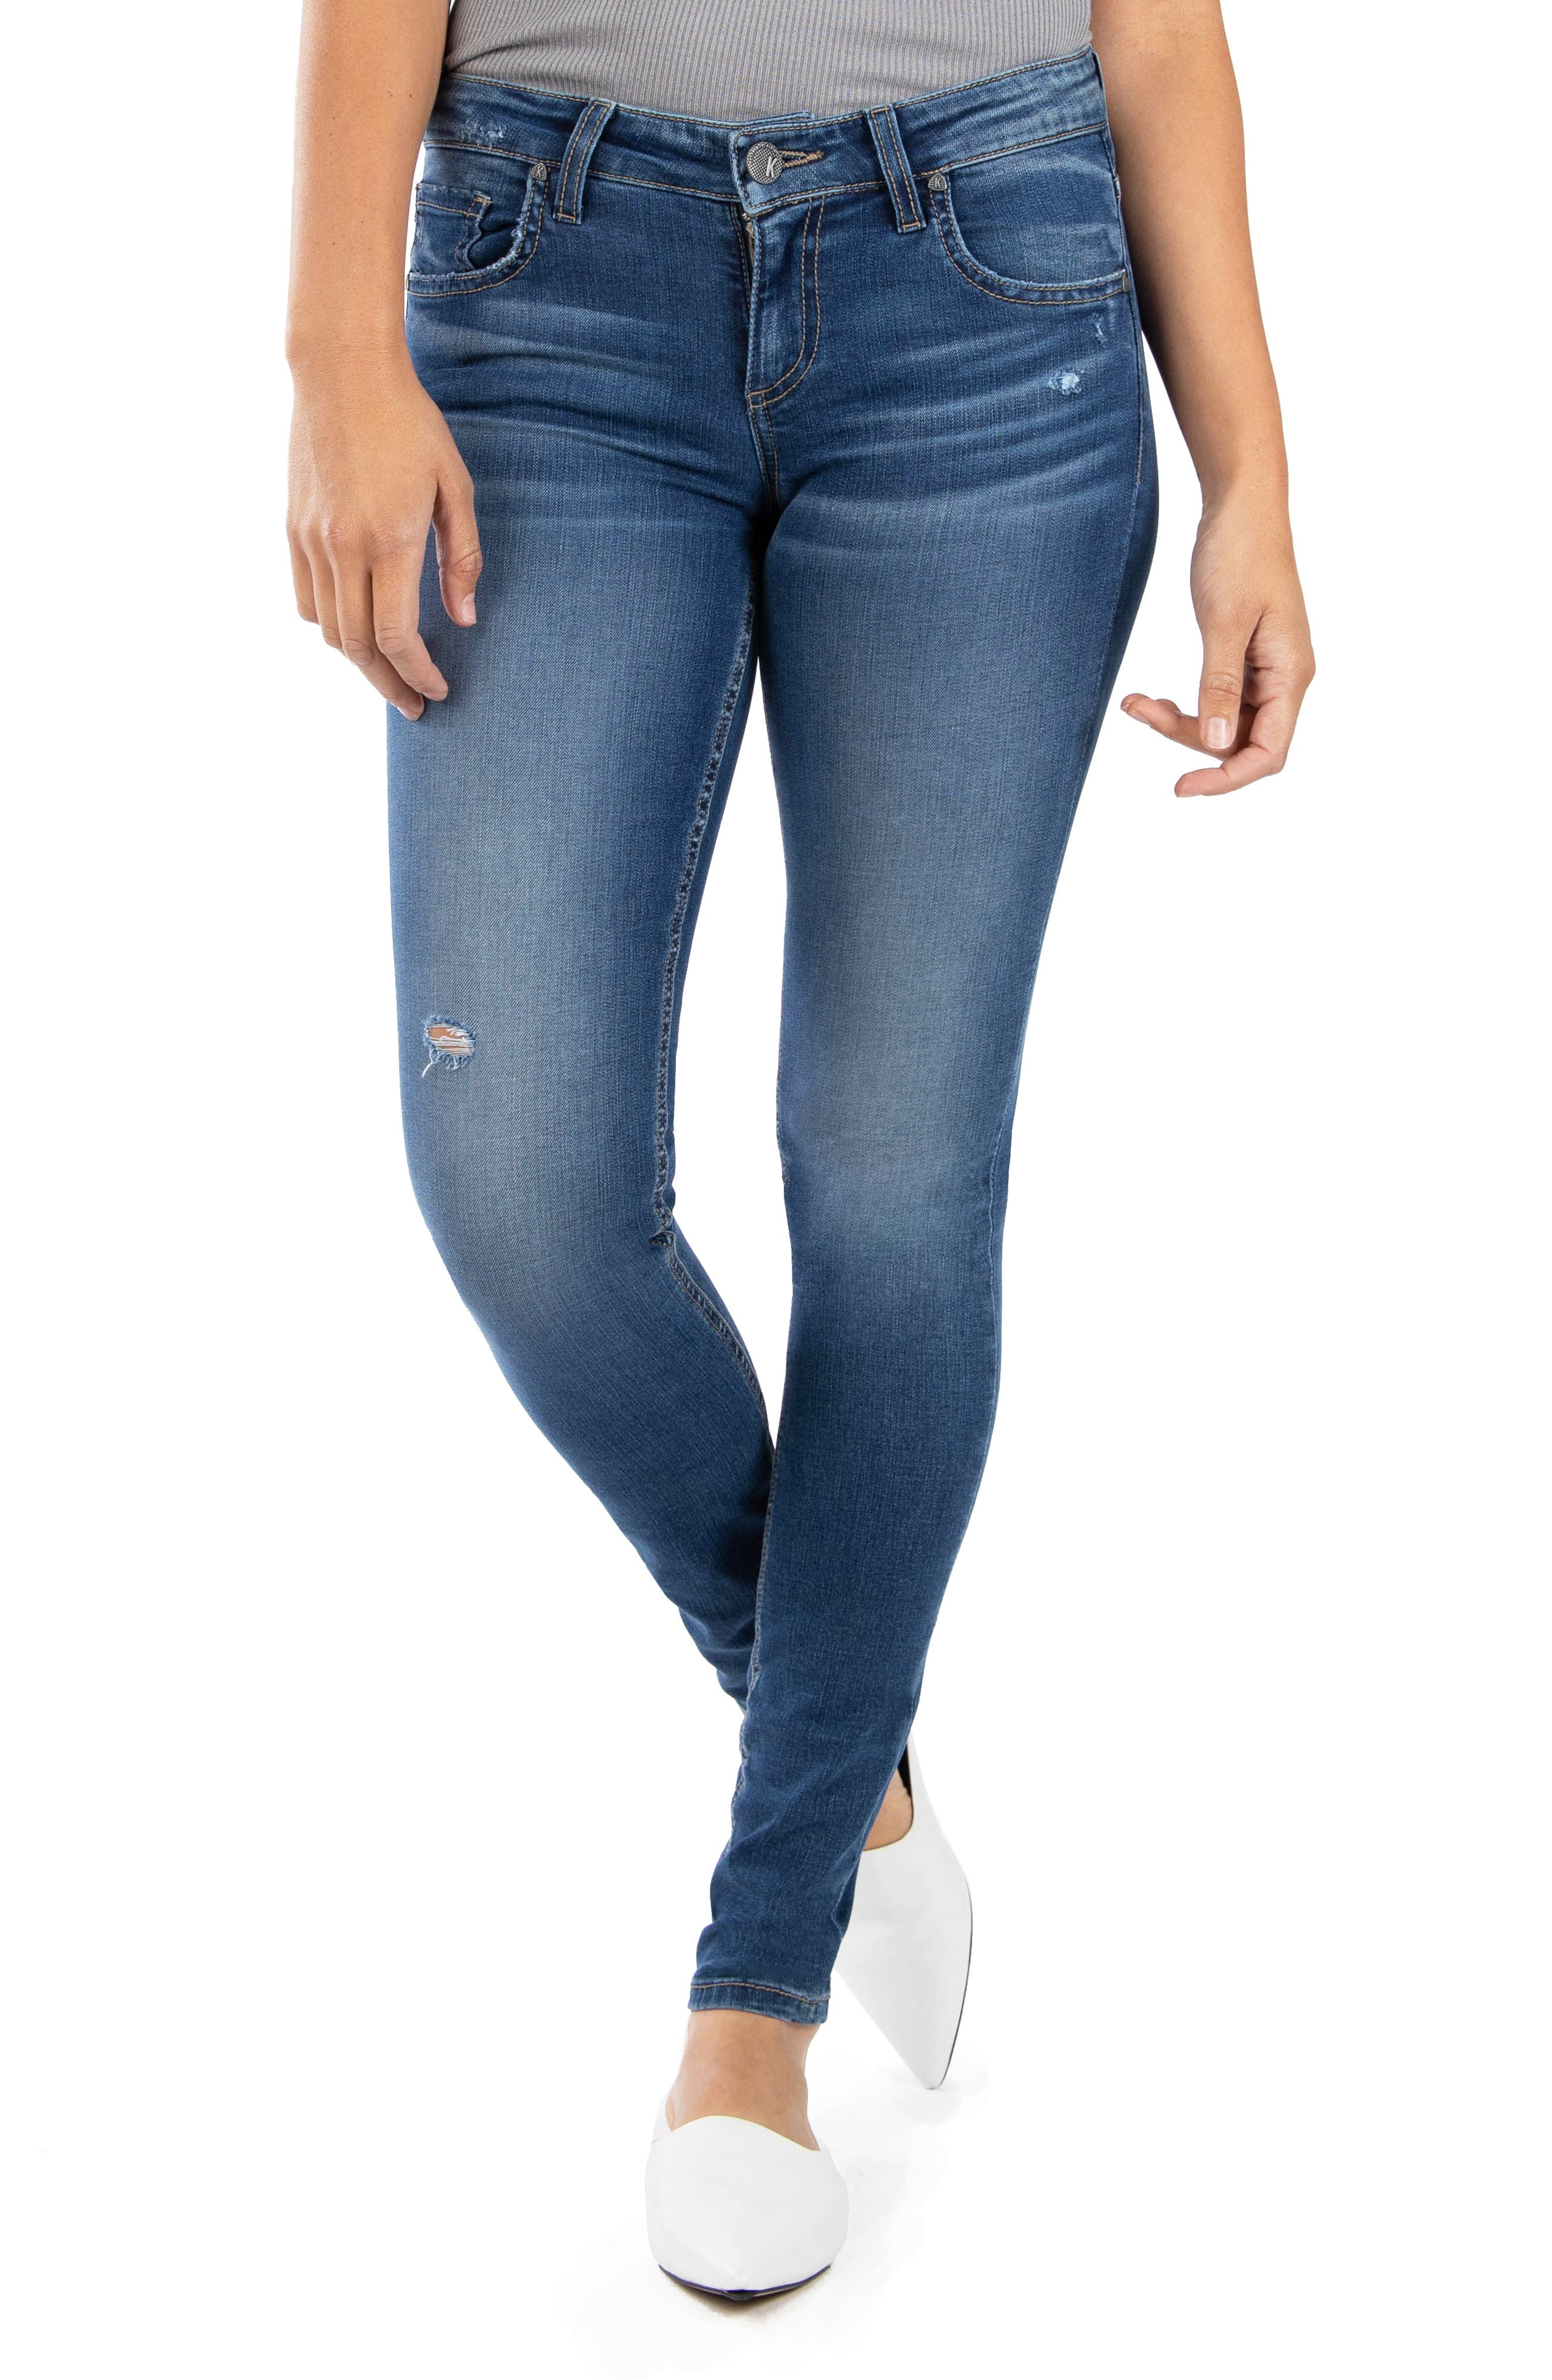 Image of KUT from the Kloth Mia Toothpick Distressed Skinny Jeans